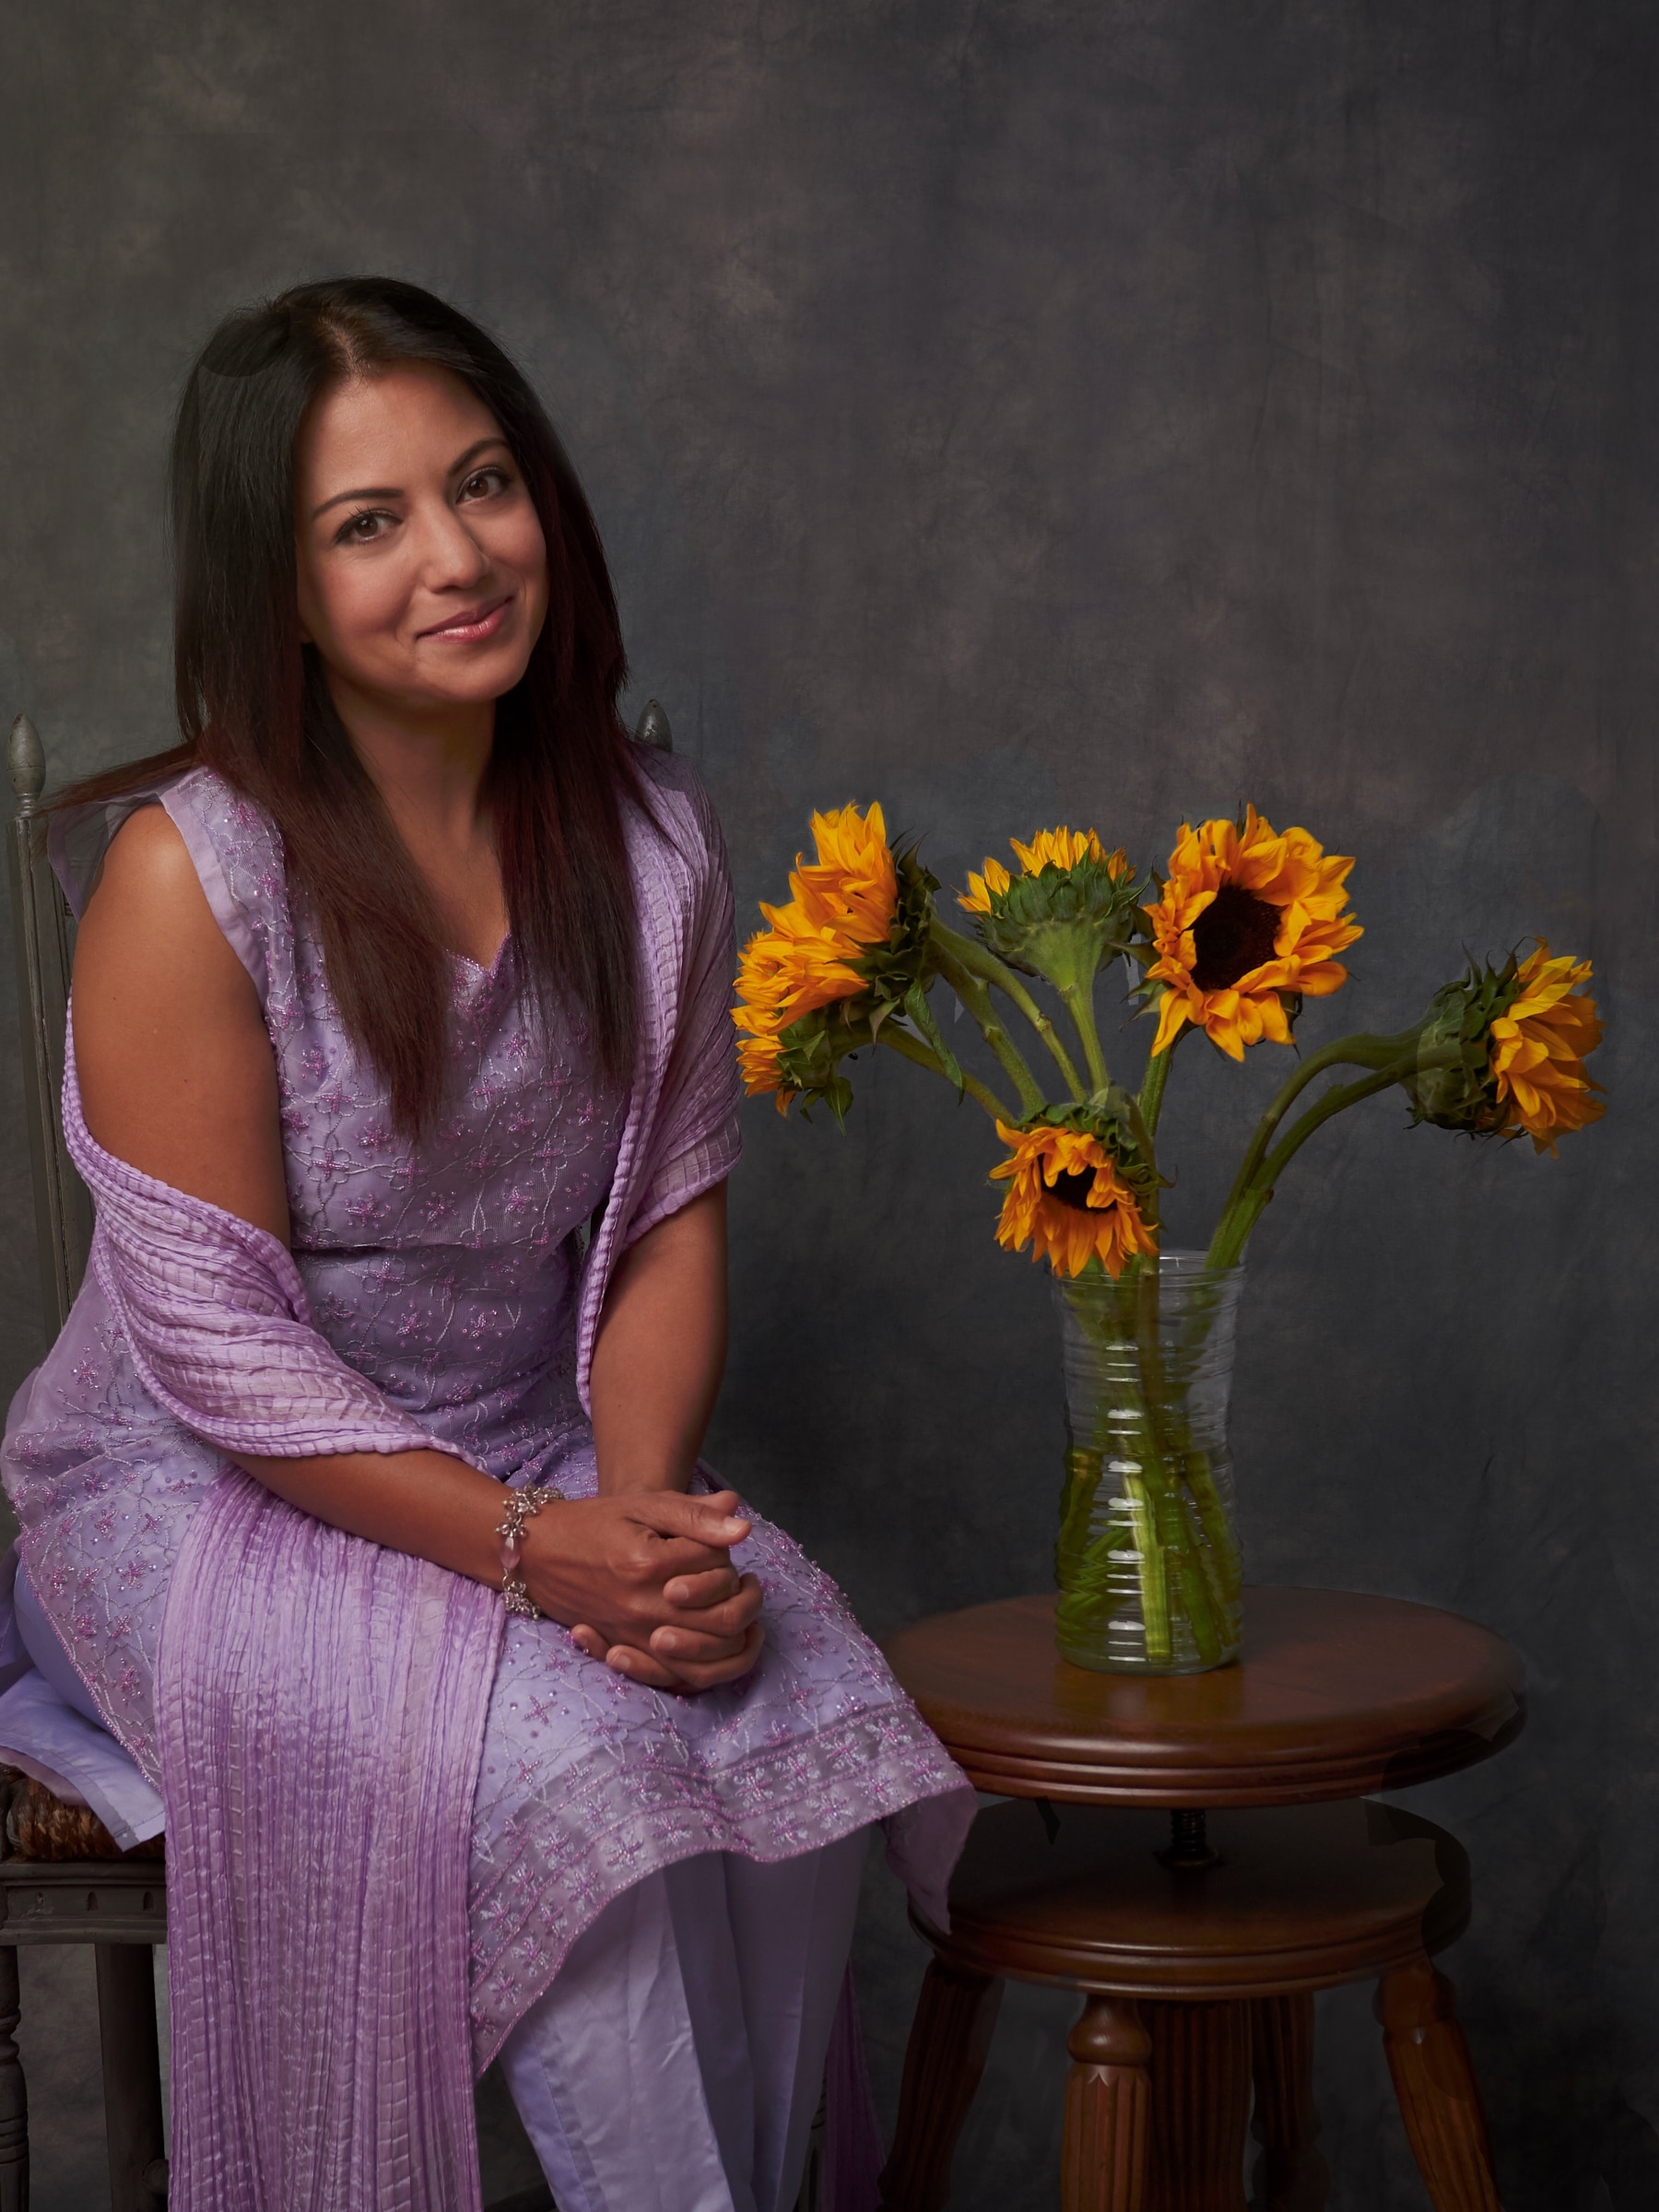 purple dress and sunflowers